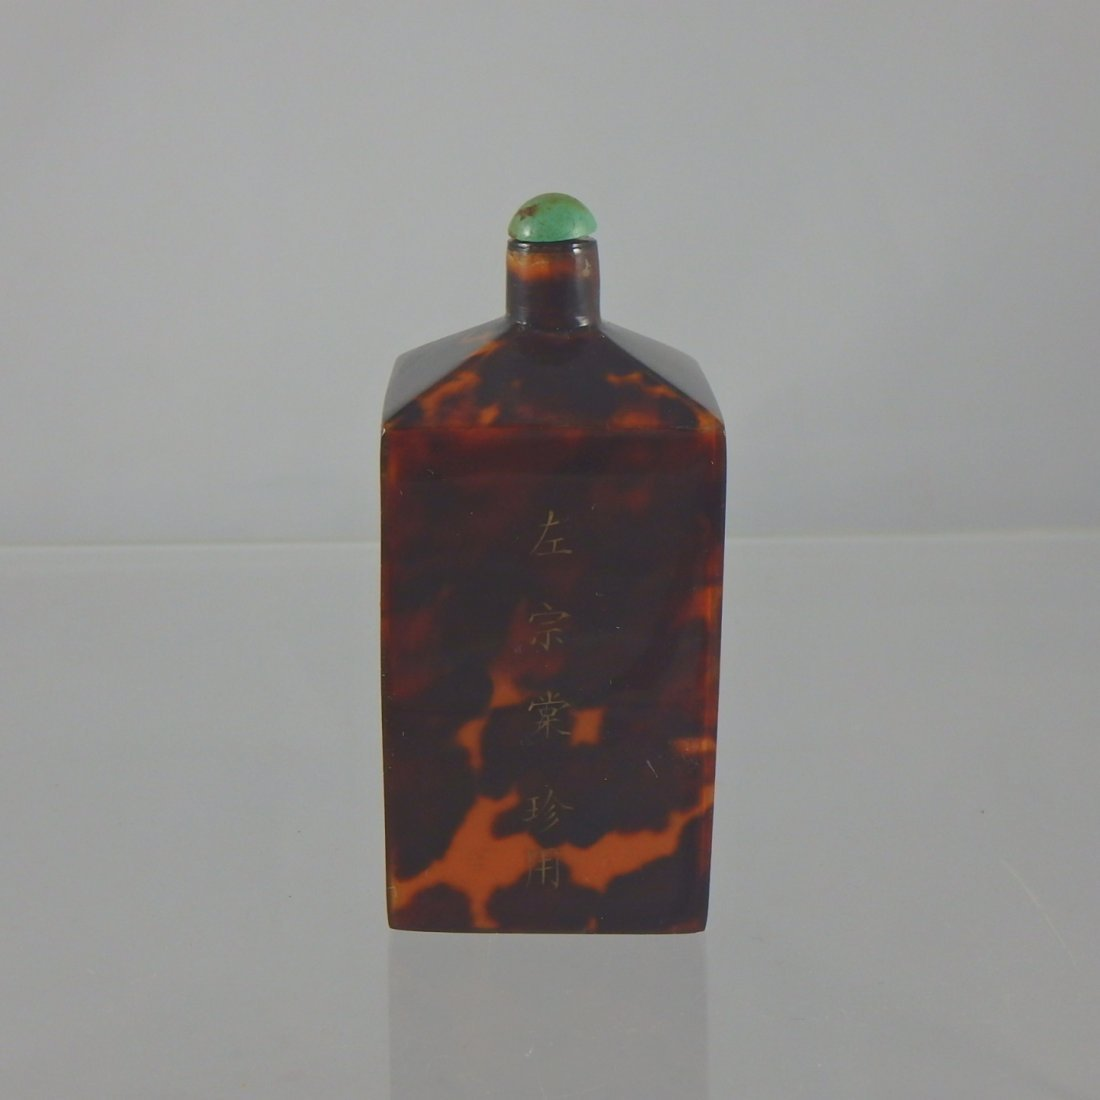 Chinese Qing Dynasty Snuffbottle